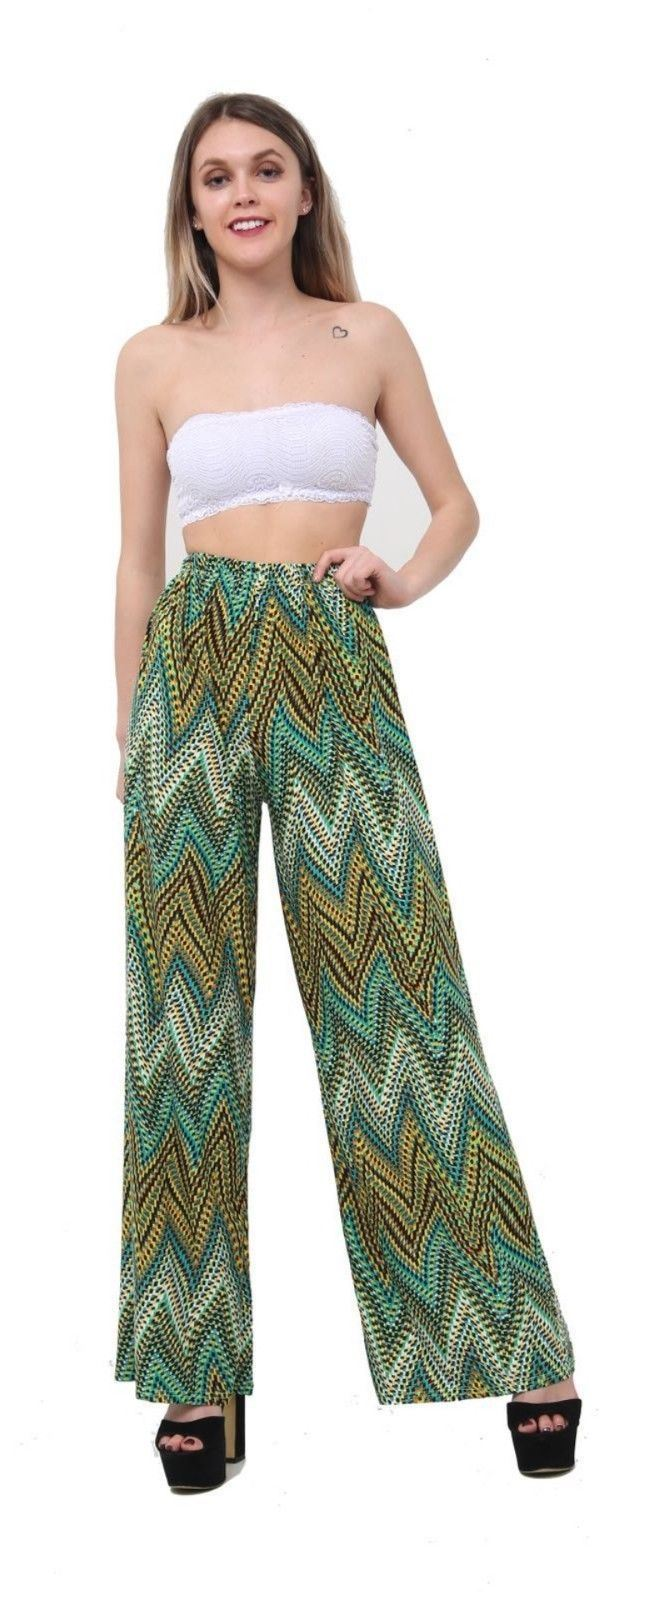 New-Ladies-Floral-Printed-Wide-Leg-Flared-Parallel-Baggy-Trousers-Pants-Palazzo thumbnail 13